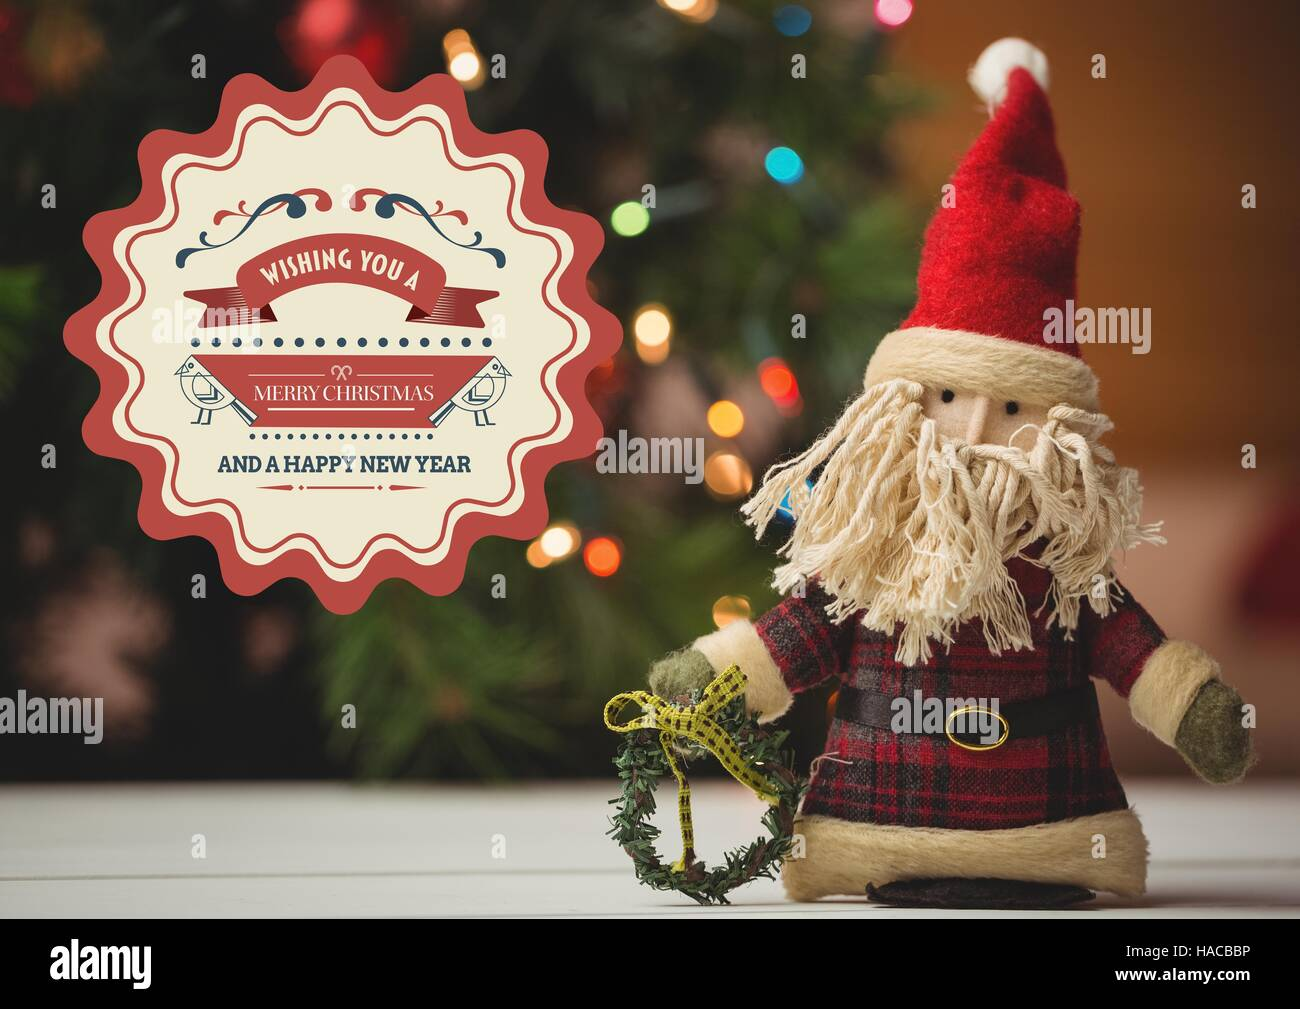 New Year Greeting Quotes With Santa Doll Stock Photo 126891514 Alamy